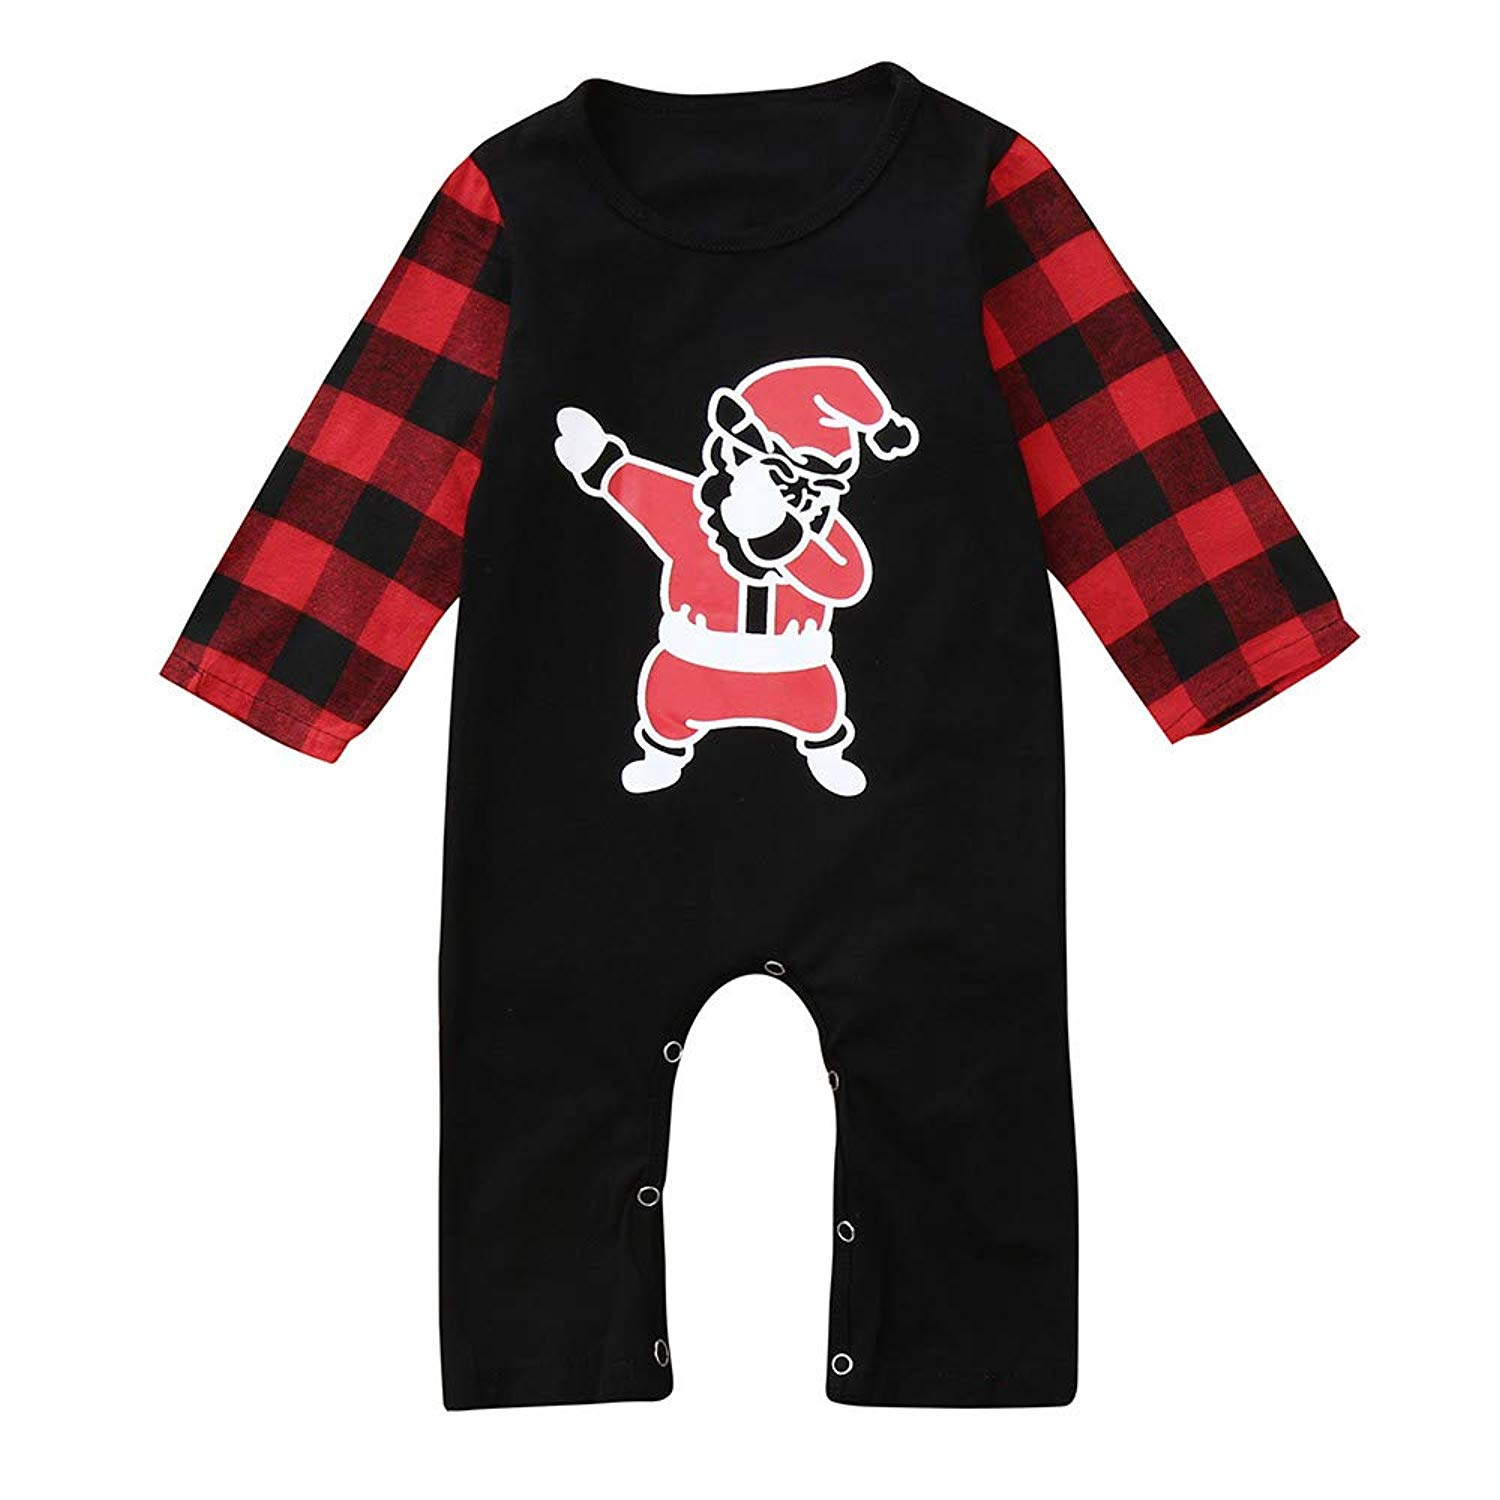 8d72024dc1 Get Quotations · Tronet Christmas Baby Boys Girls Winter Santa Print Romper  Jumpsuit Infant Casual Warm Outfits